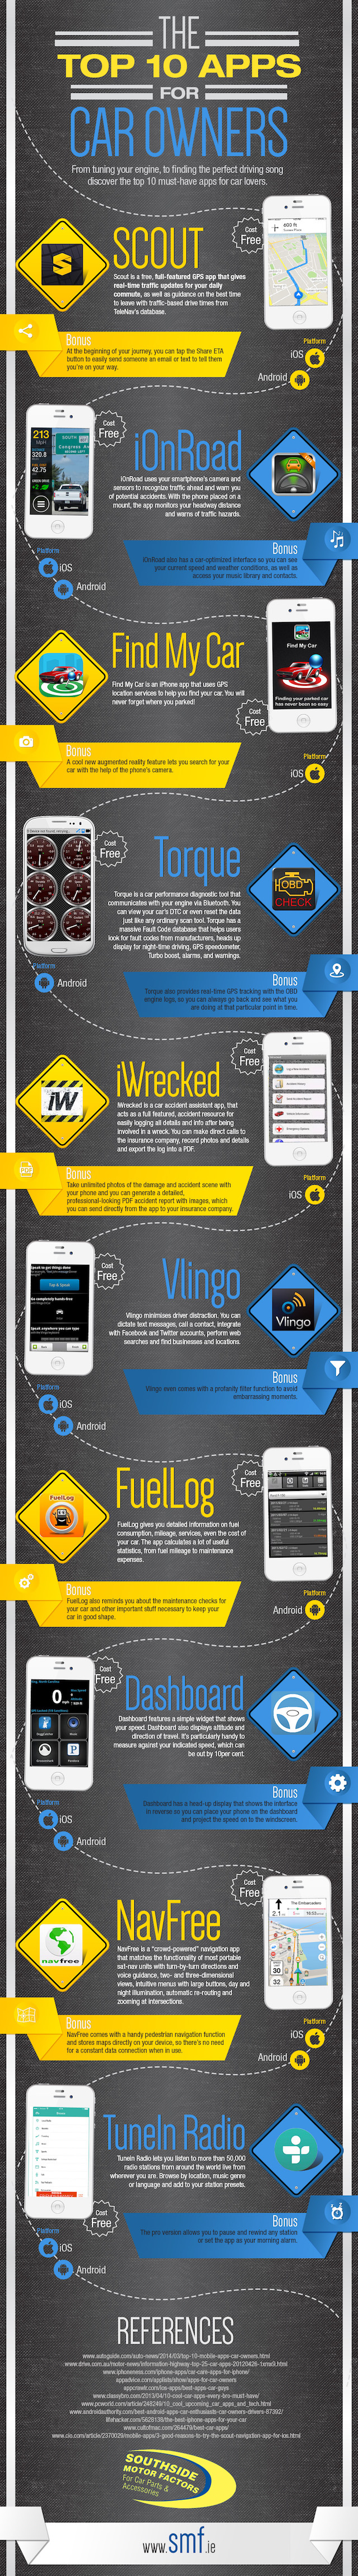 Top 10 car apps infographic